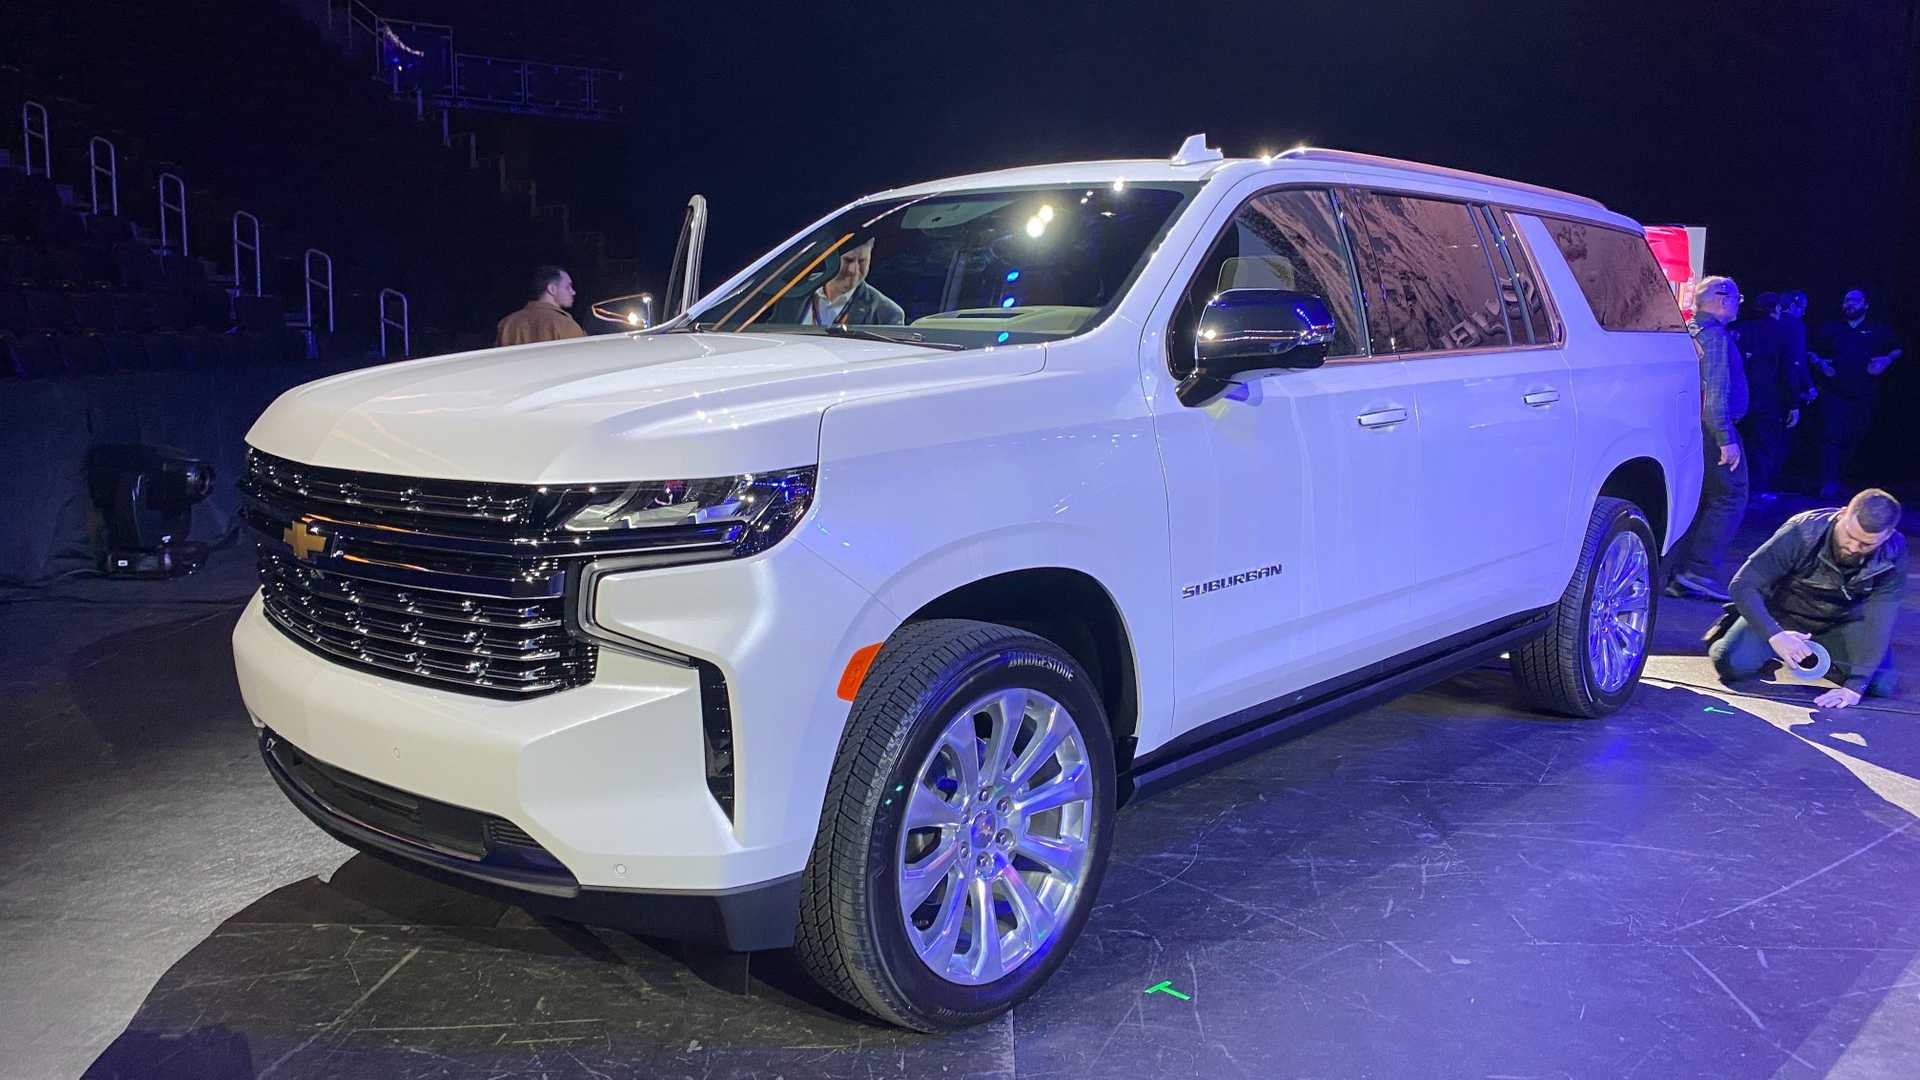 2021 chevrolet suburban and tahoe first look 2021 chevrolet suburban and tahoe